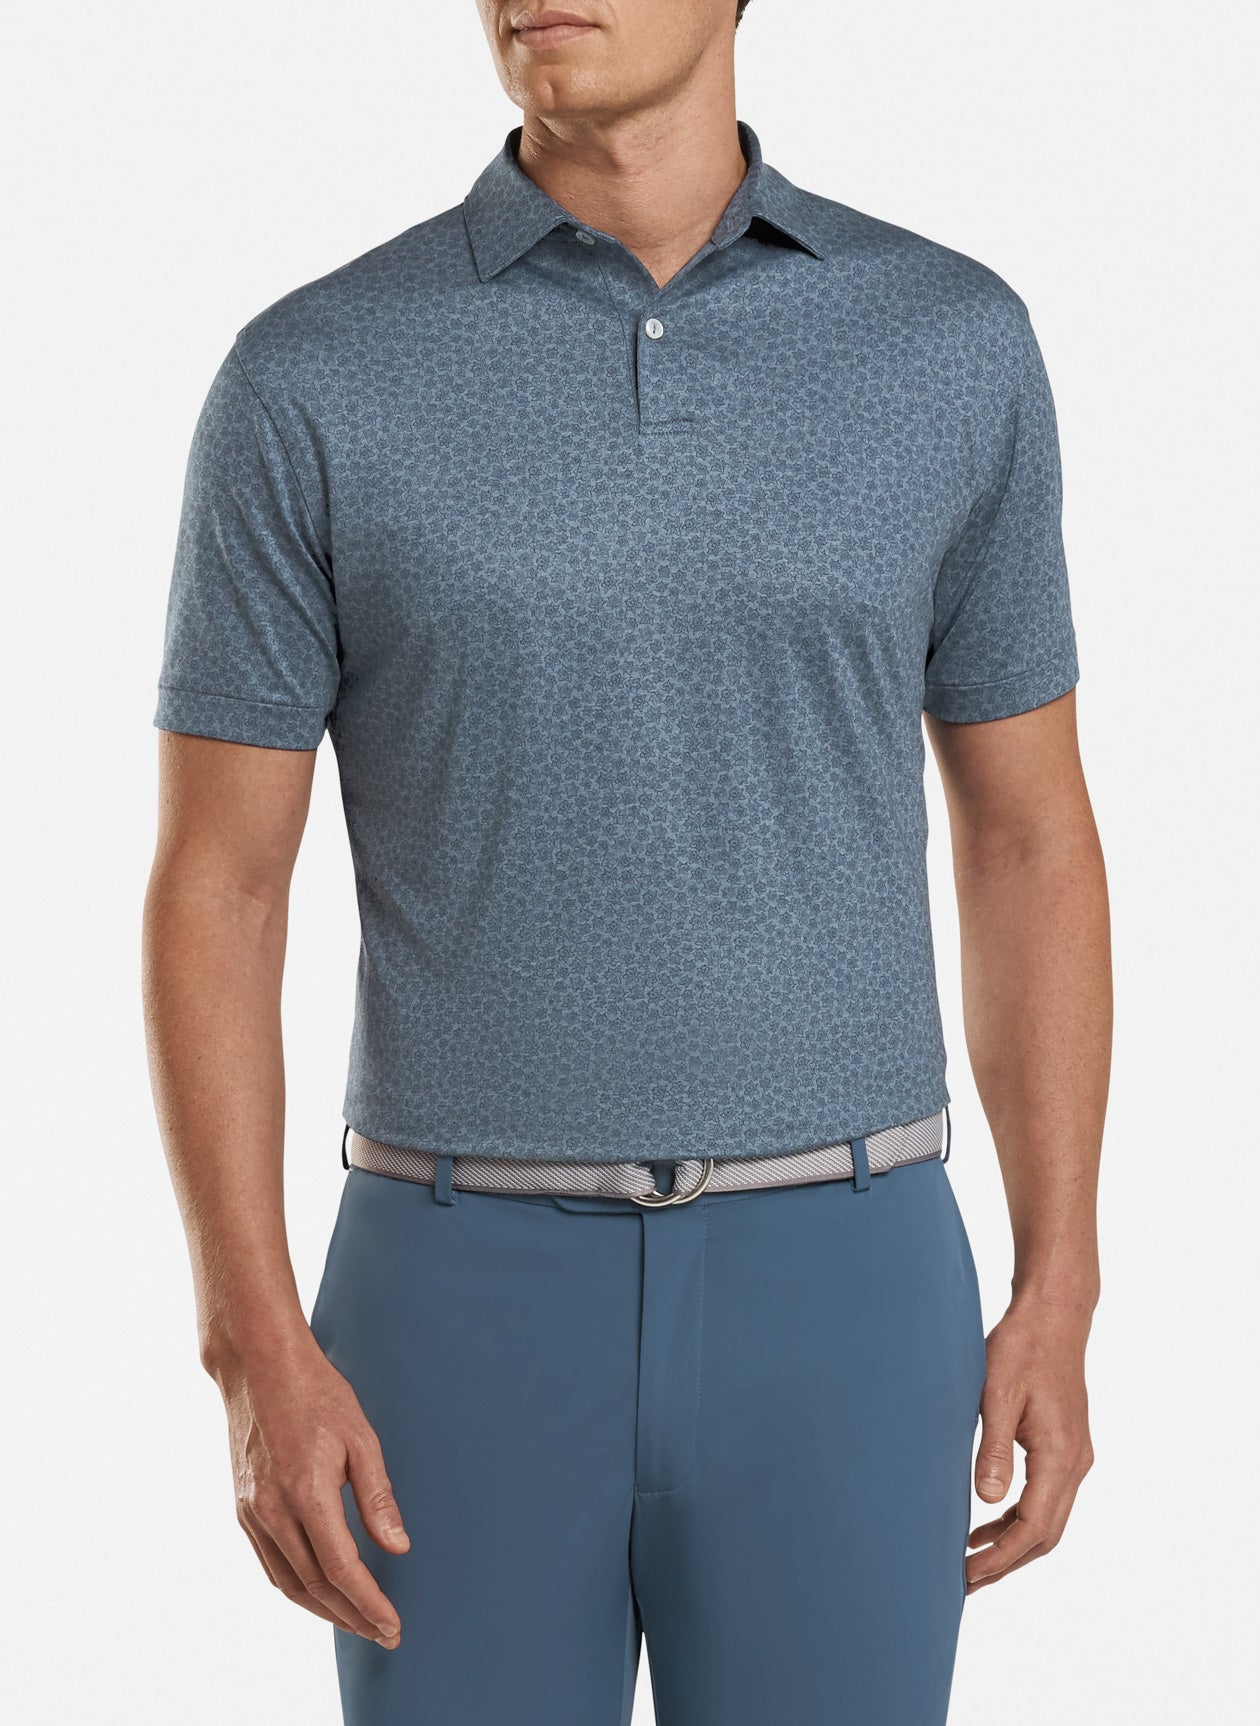 Peter Millar Sunday Print Performance Polo MS20EK514S